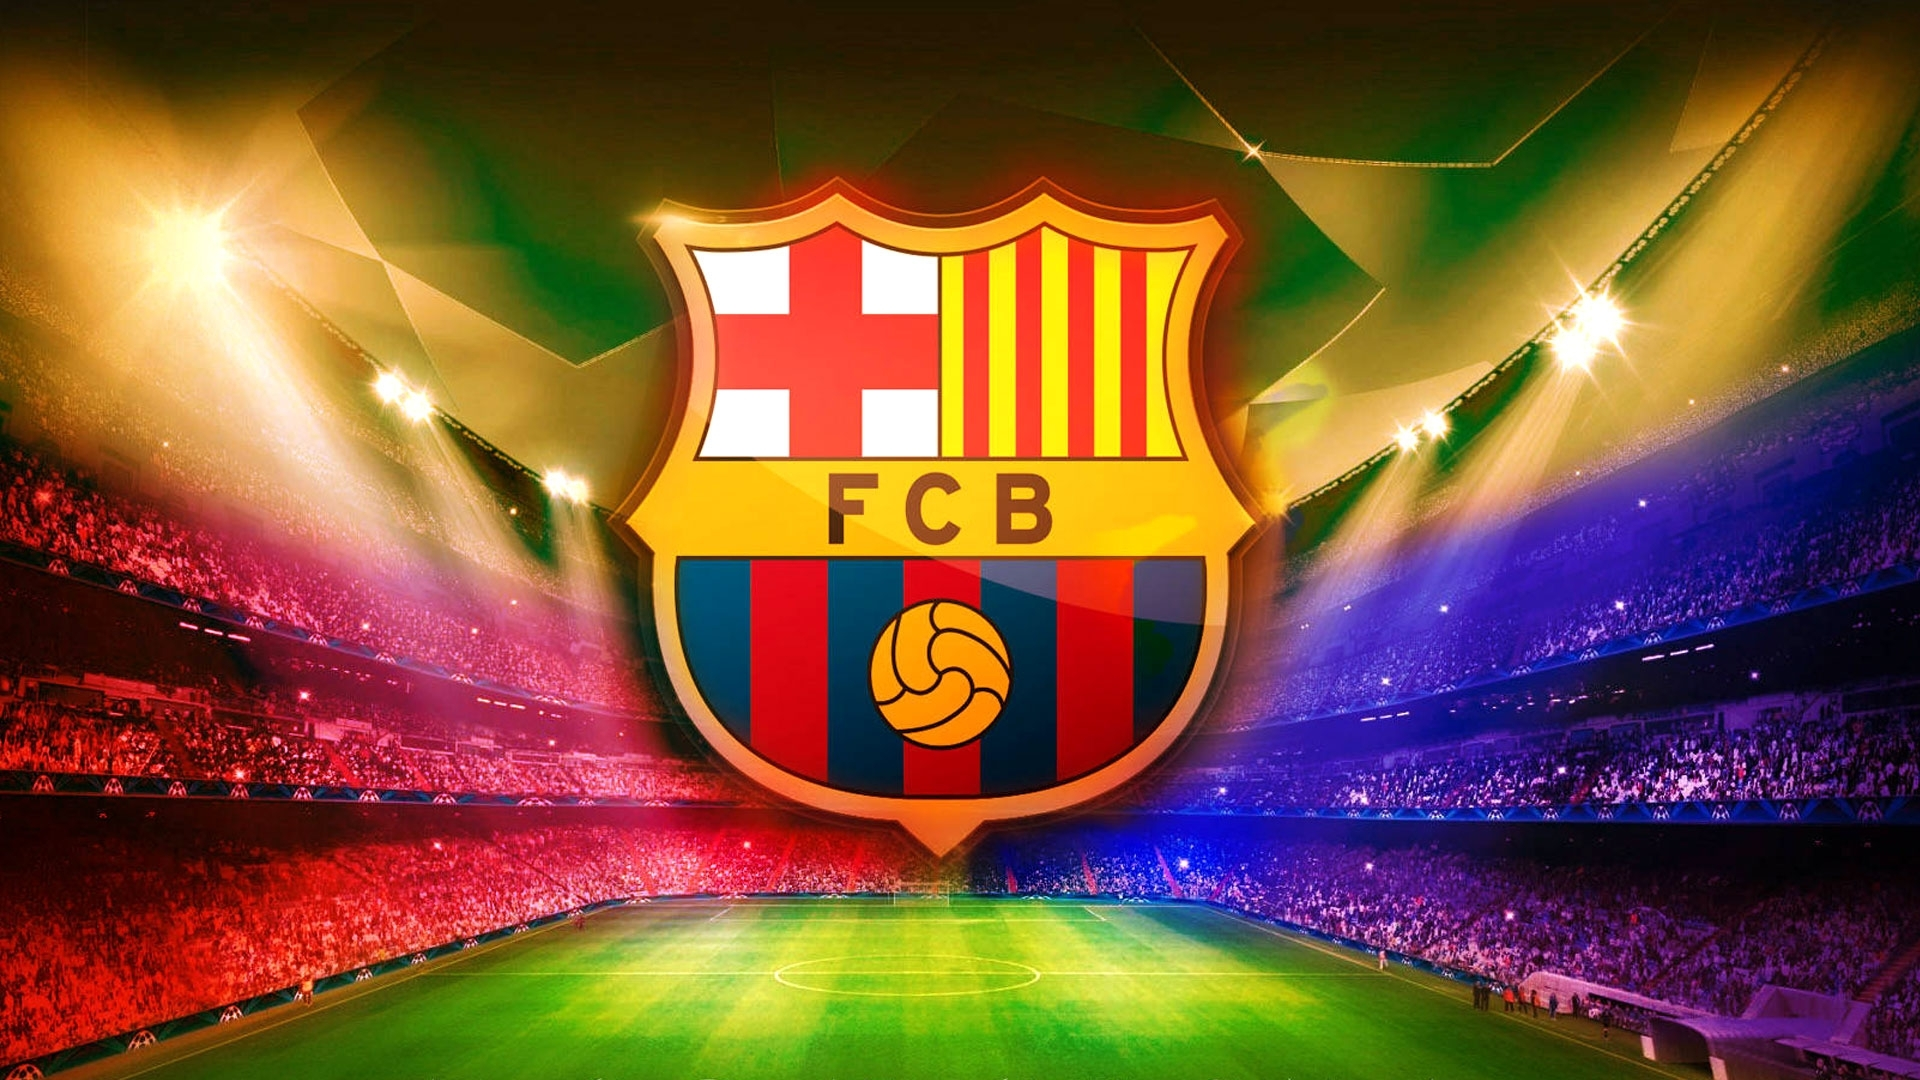 fc barcelona logo desktop wallpaper images. - media file